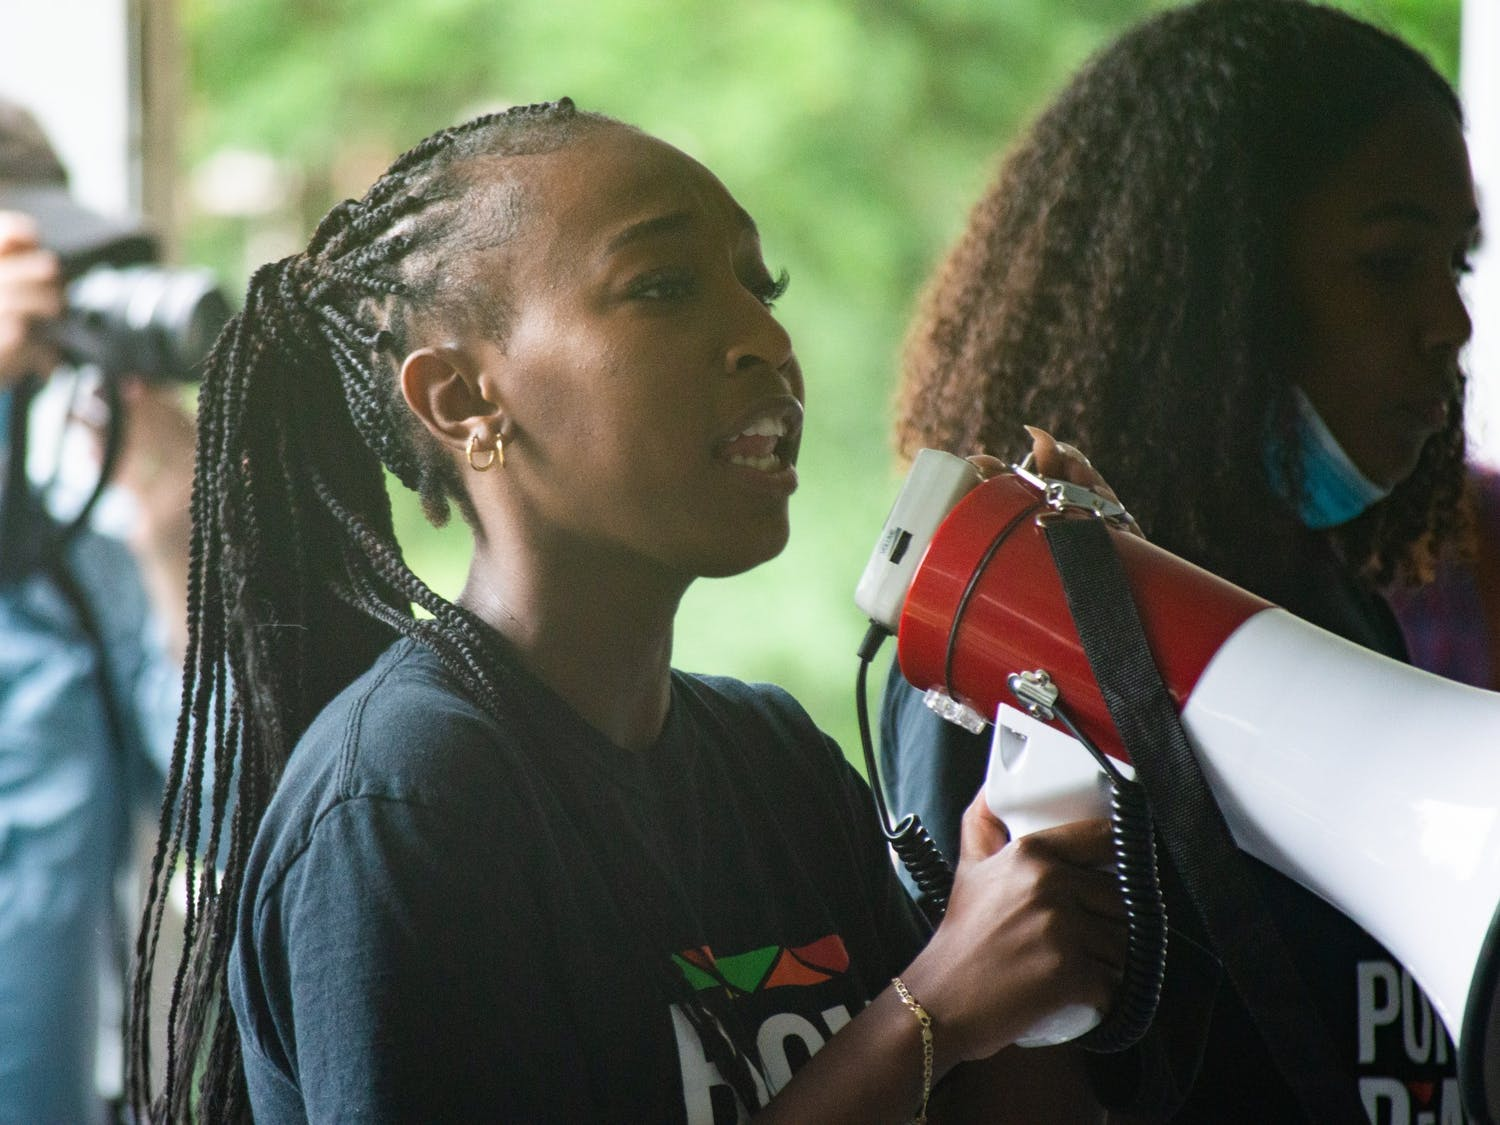 On June 25, 2021, the UNC Black Student Movement hosted a demonstration in support of journalist Nikole Hannah-Jones who was denied tenure by the UNC Board of Trustees. During the demonstrations, members of the Black Student Movement spoke of a list of demands directed at Chancellor Kevin Guskiewicz and the UNC Board of Trustees. Some of the 13 demands include diversifying the Board, a permanent memorial for James Cates and granting Nikole Hannah-Jones tenure.